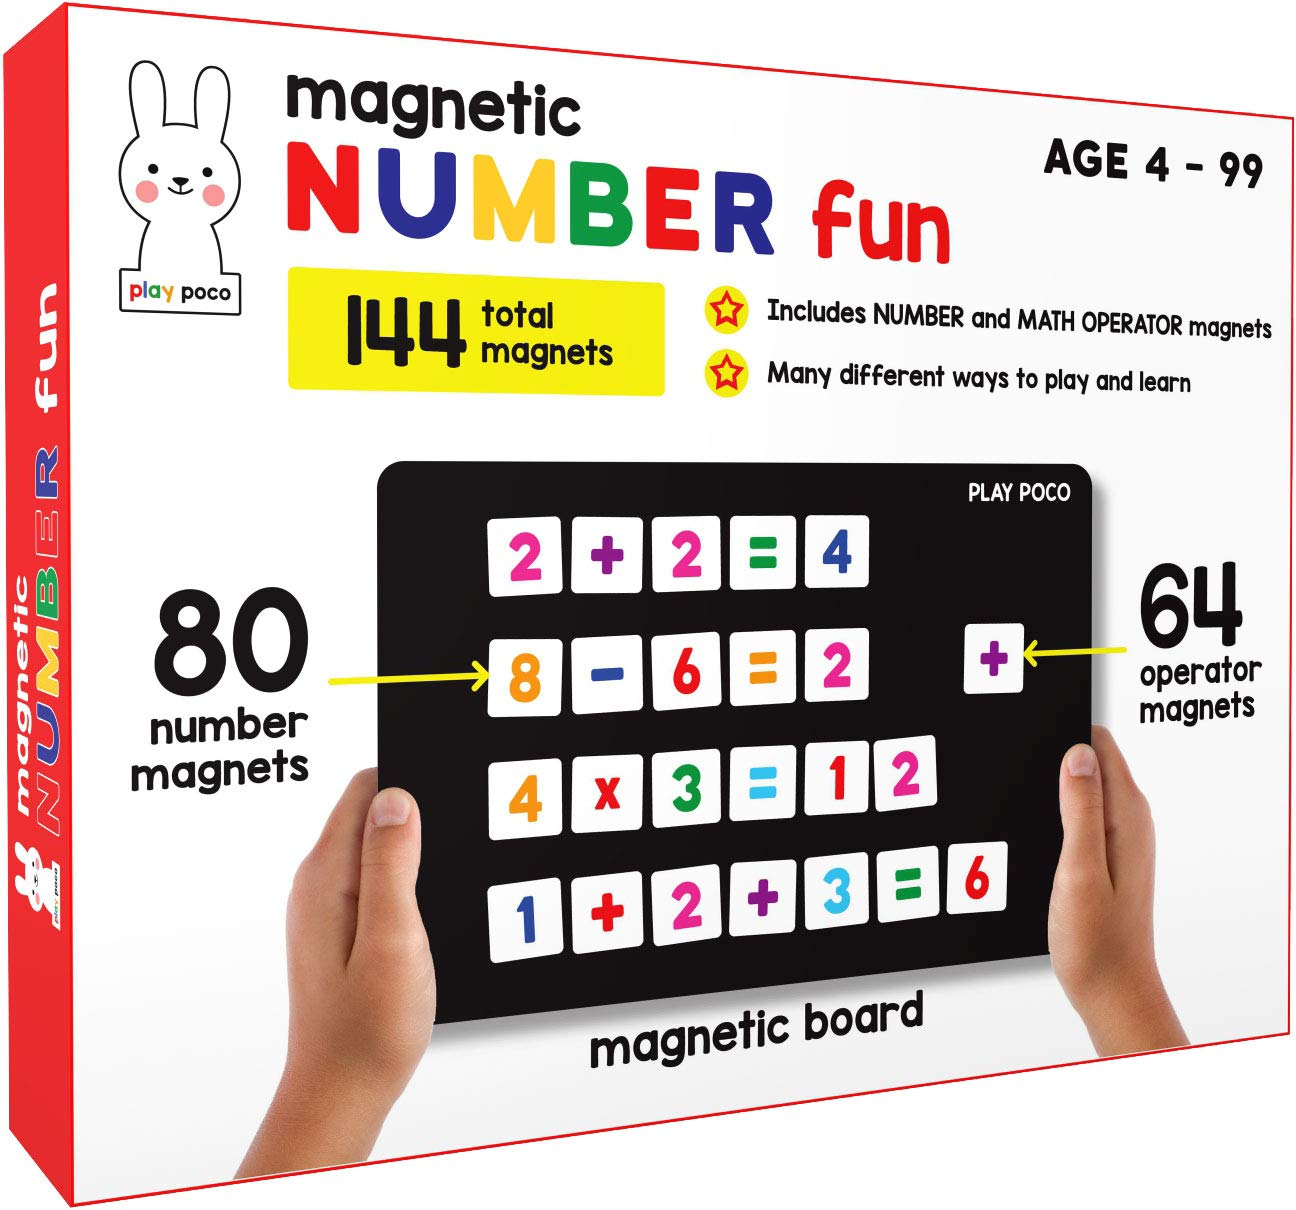 PLAY POCO Magnetic Number Fun for Kids for ₹611